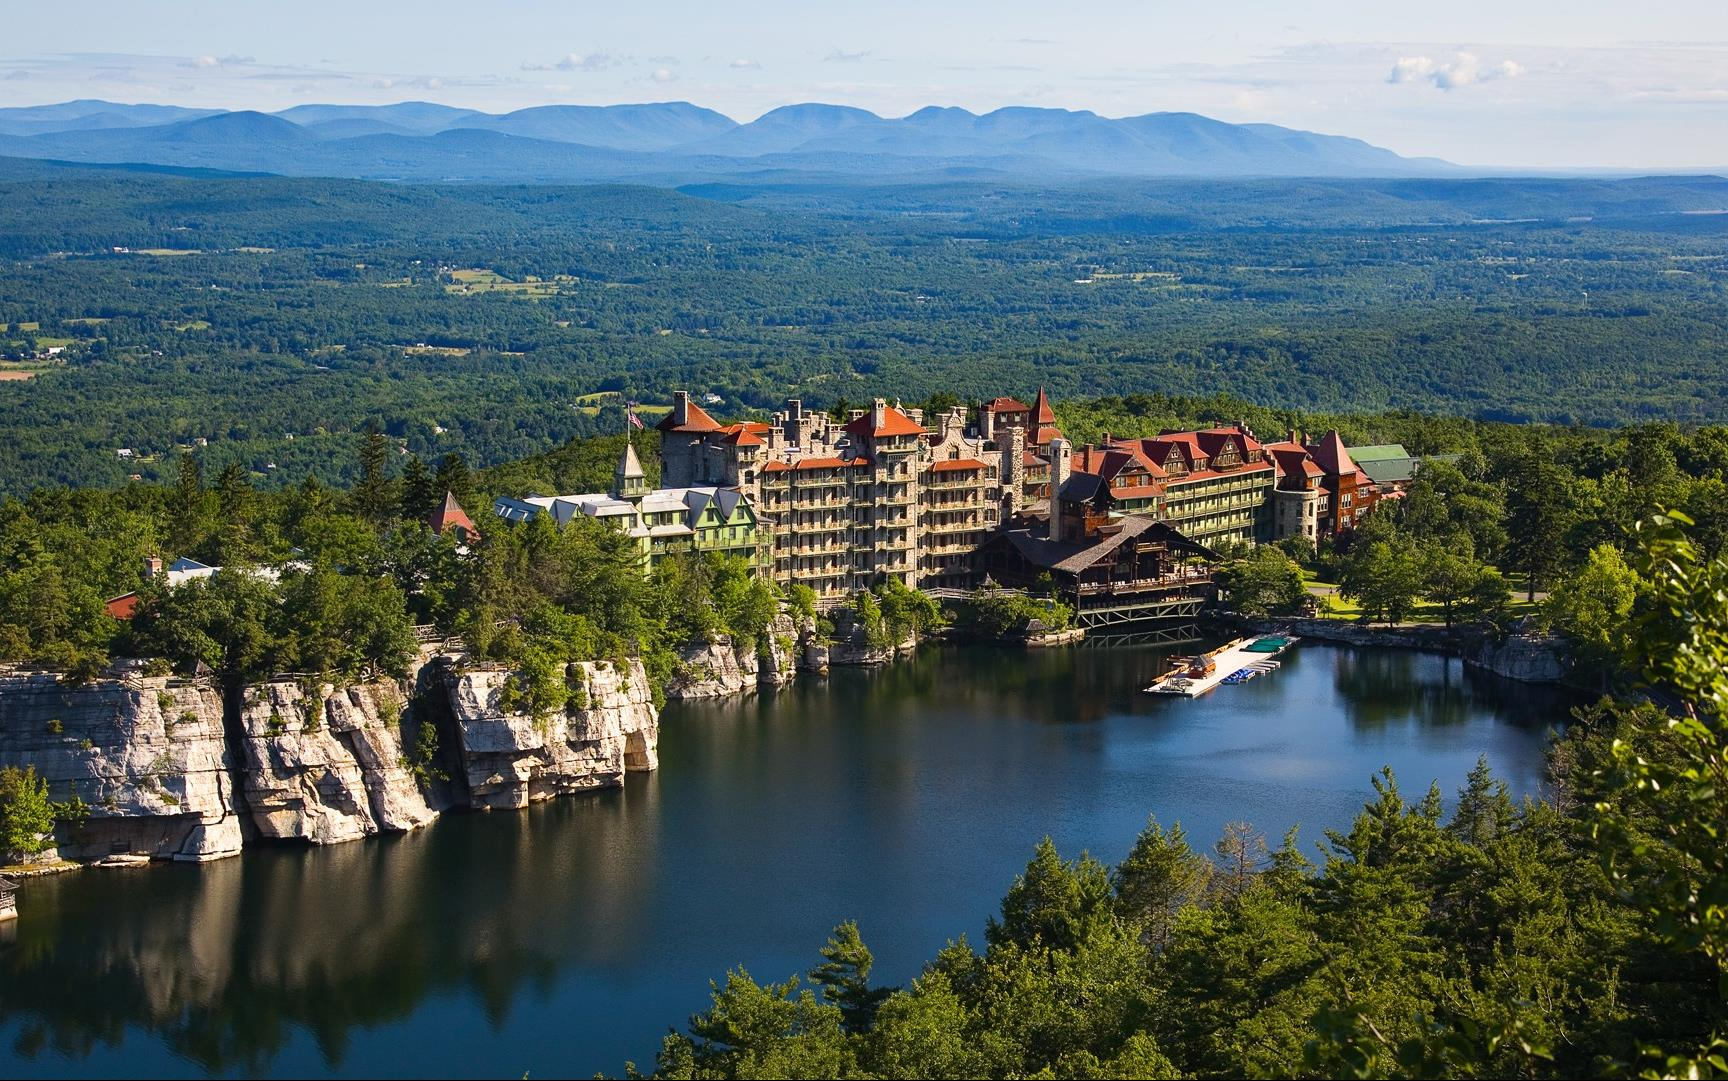 Meetings and events at Mohonk Mountain House, New Paltz, NY, US